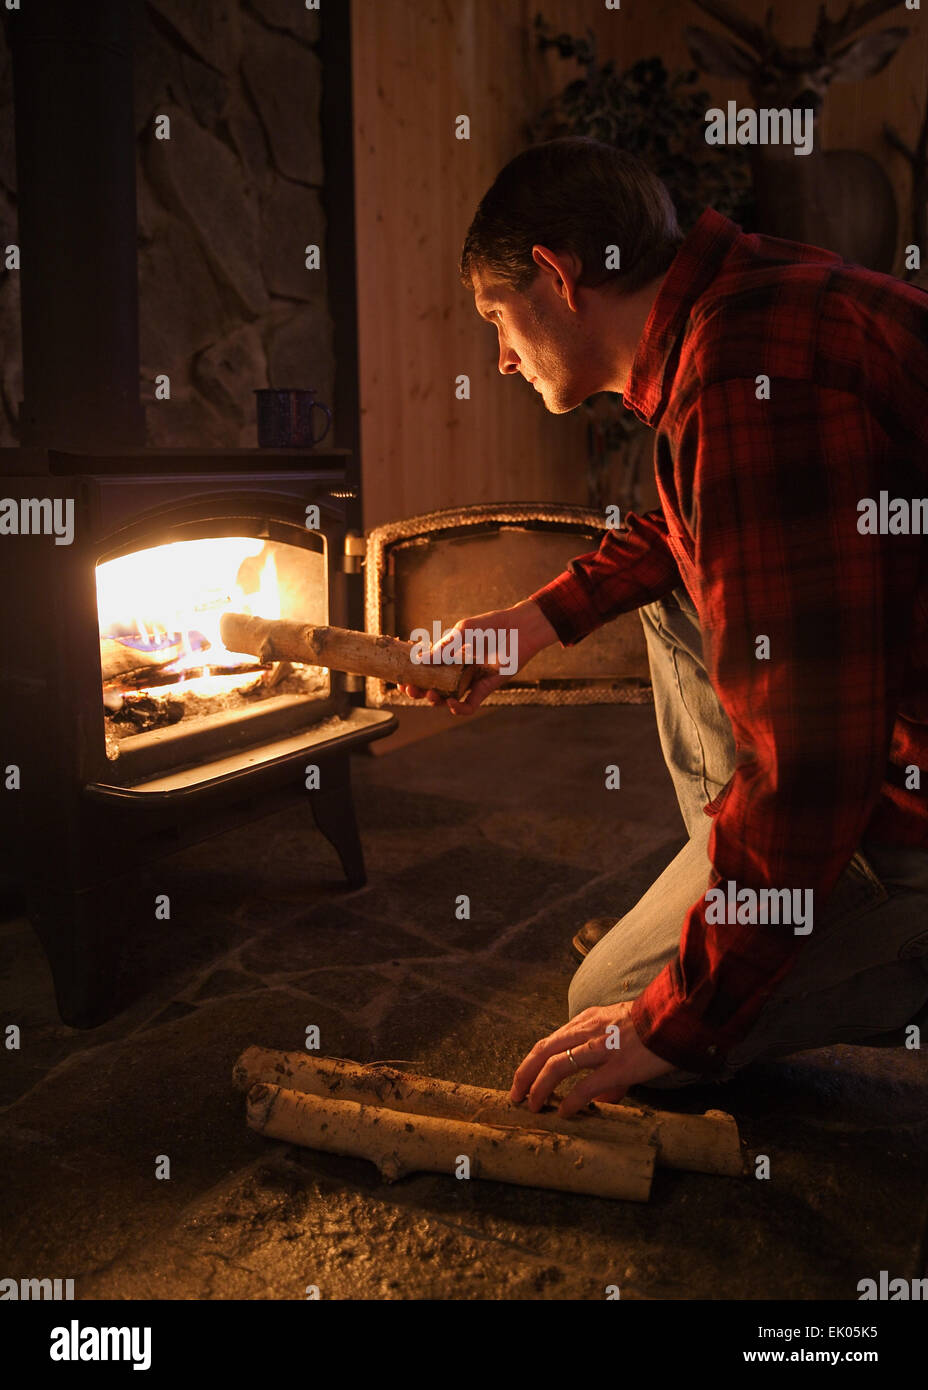 mid-adult man adding logs to a wood burning stove fire in rustic setting - Stock Image